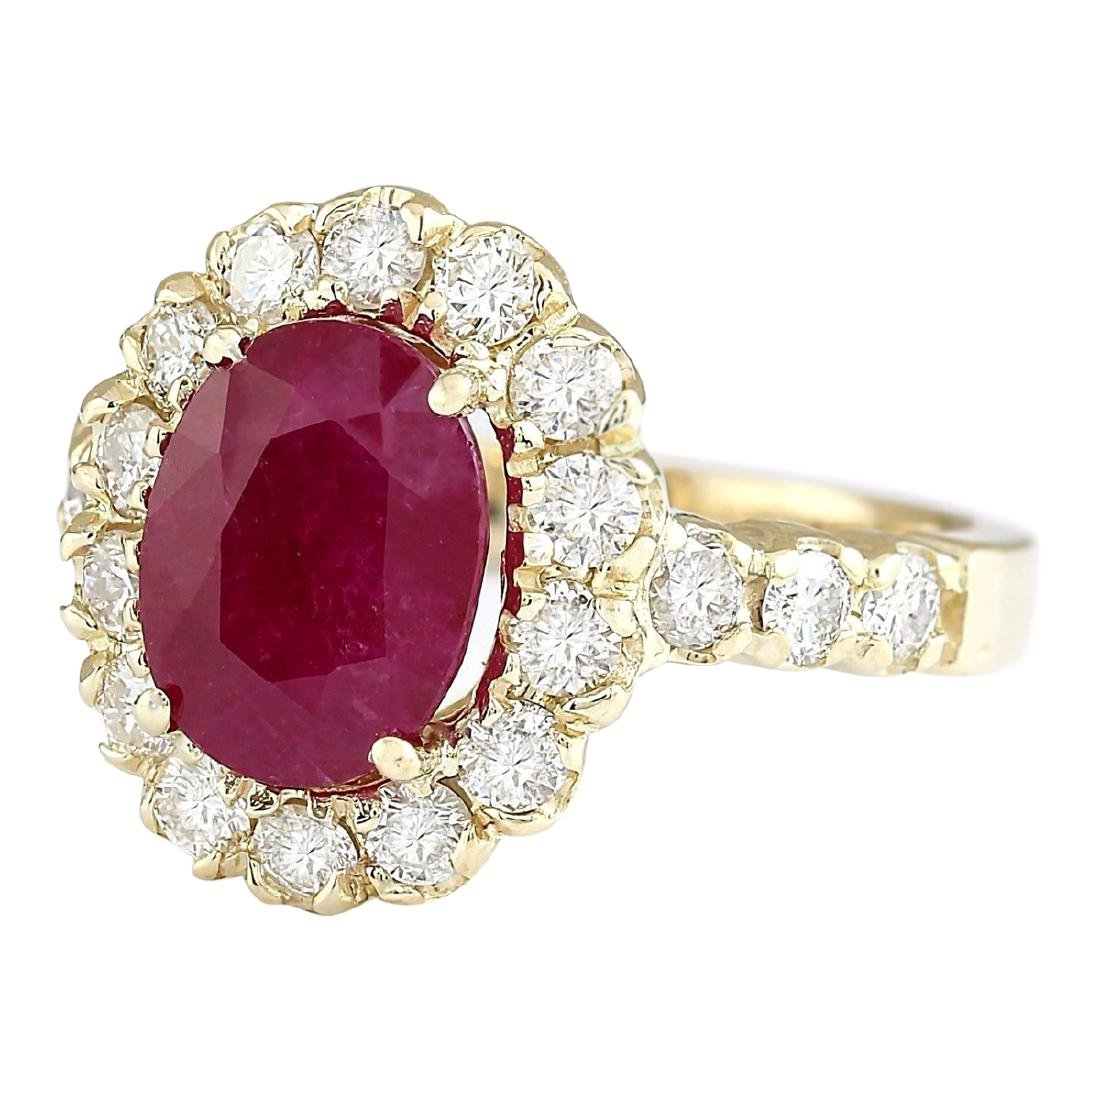 3.33 CTW Natural Ruby And Diamond Ring In 18K Yellow - 2